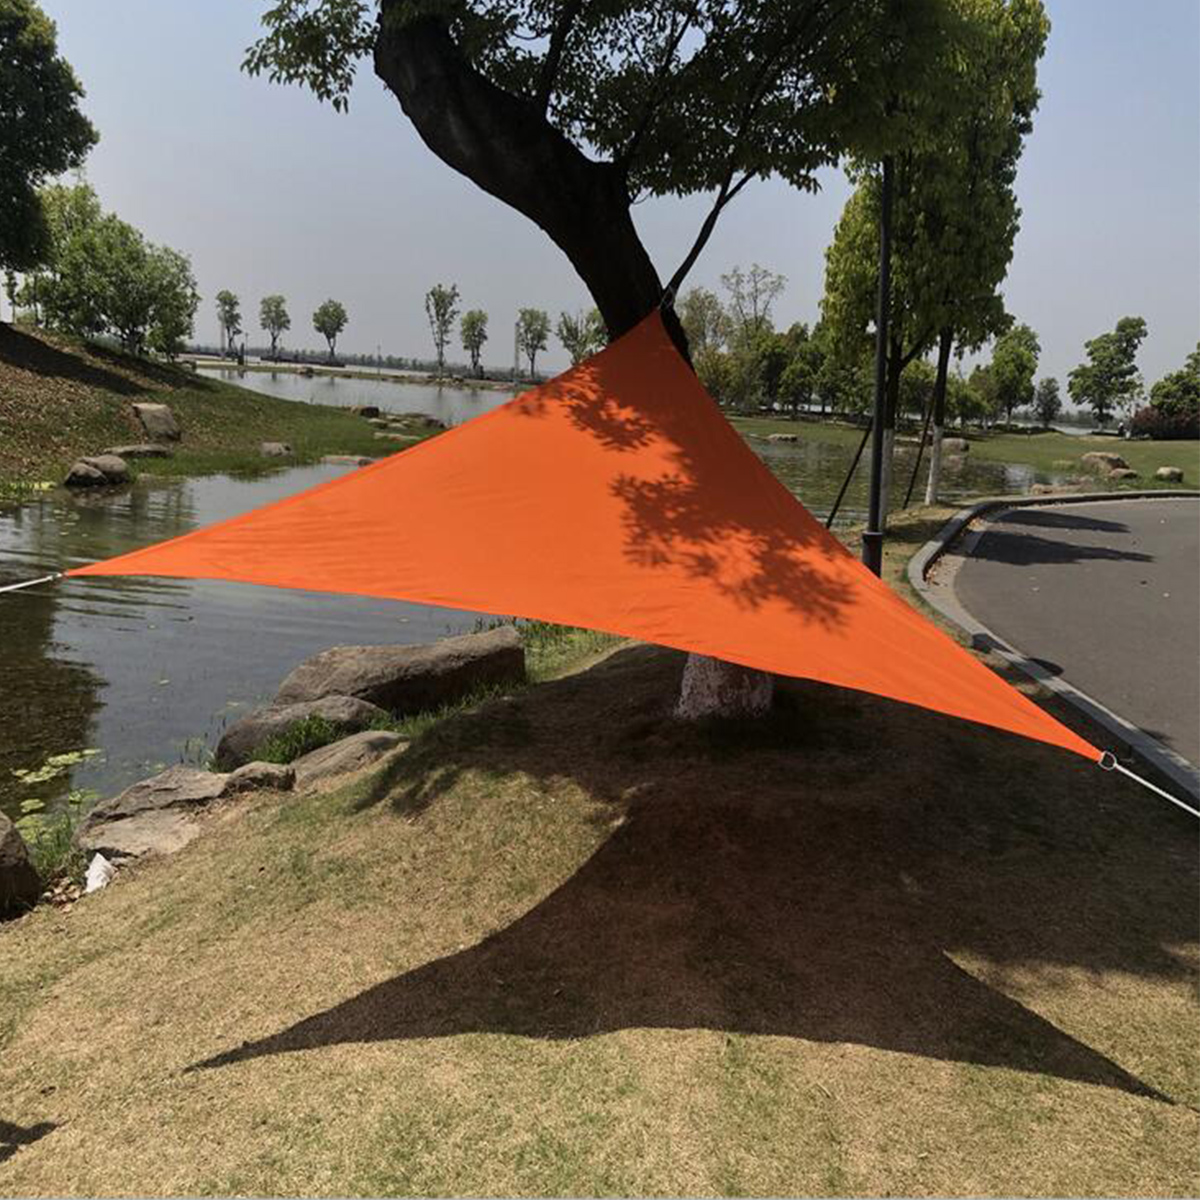 Triangle Waterproof Tent Sunshade Sail Garden Patio Awning Canopy UV Shelter Outdoor Camping